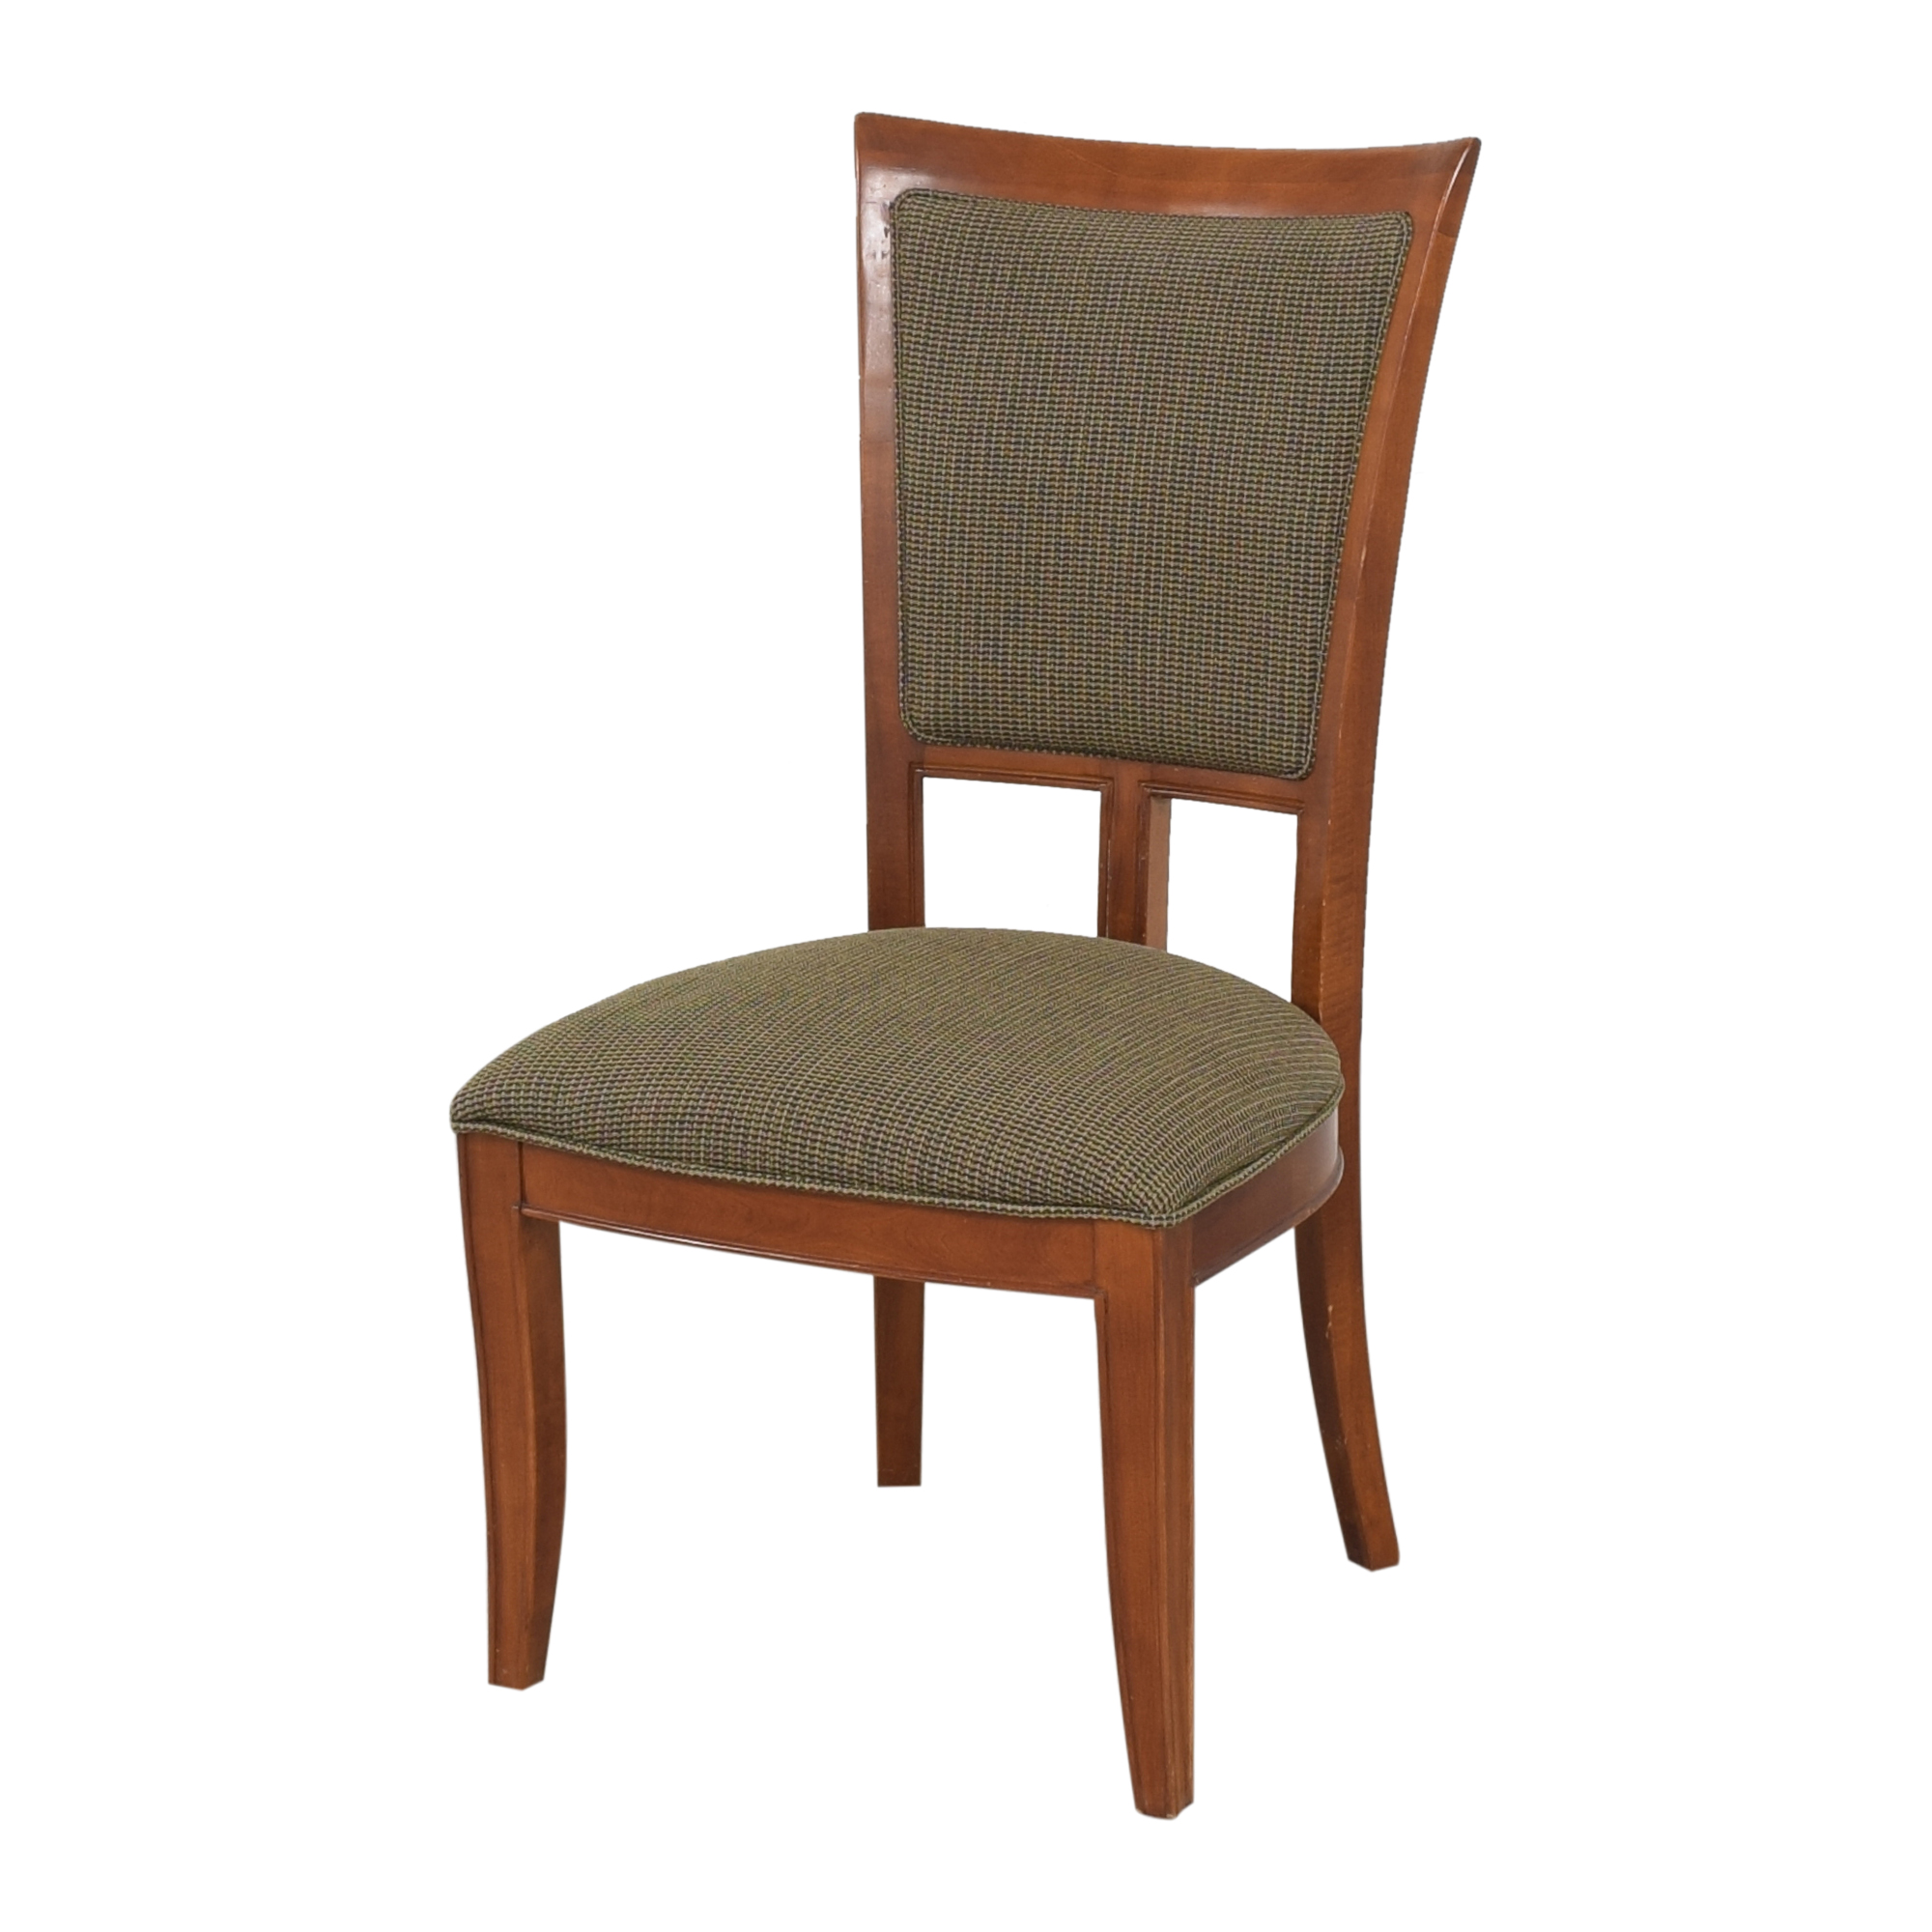 Stanley Furniture Upholstered Dining Chairs sale